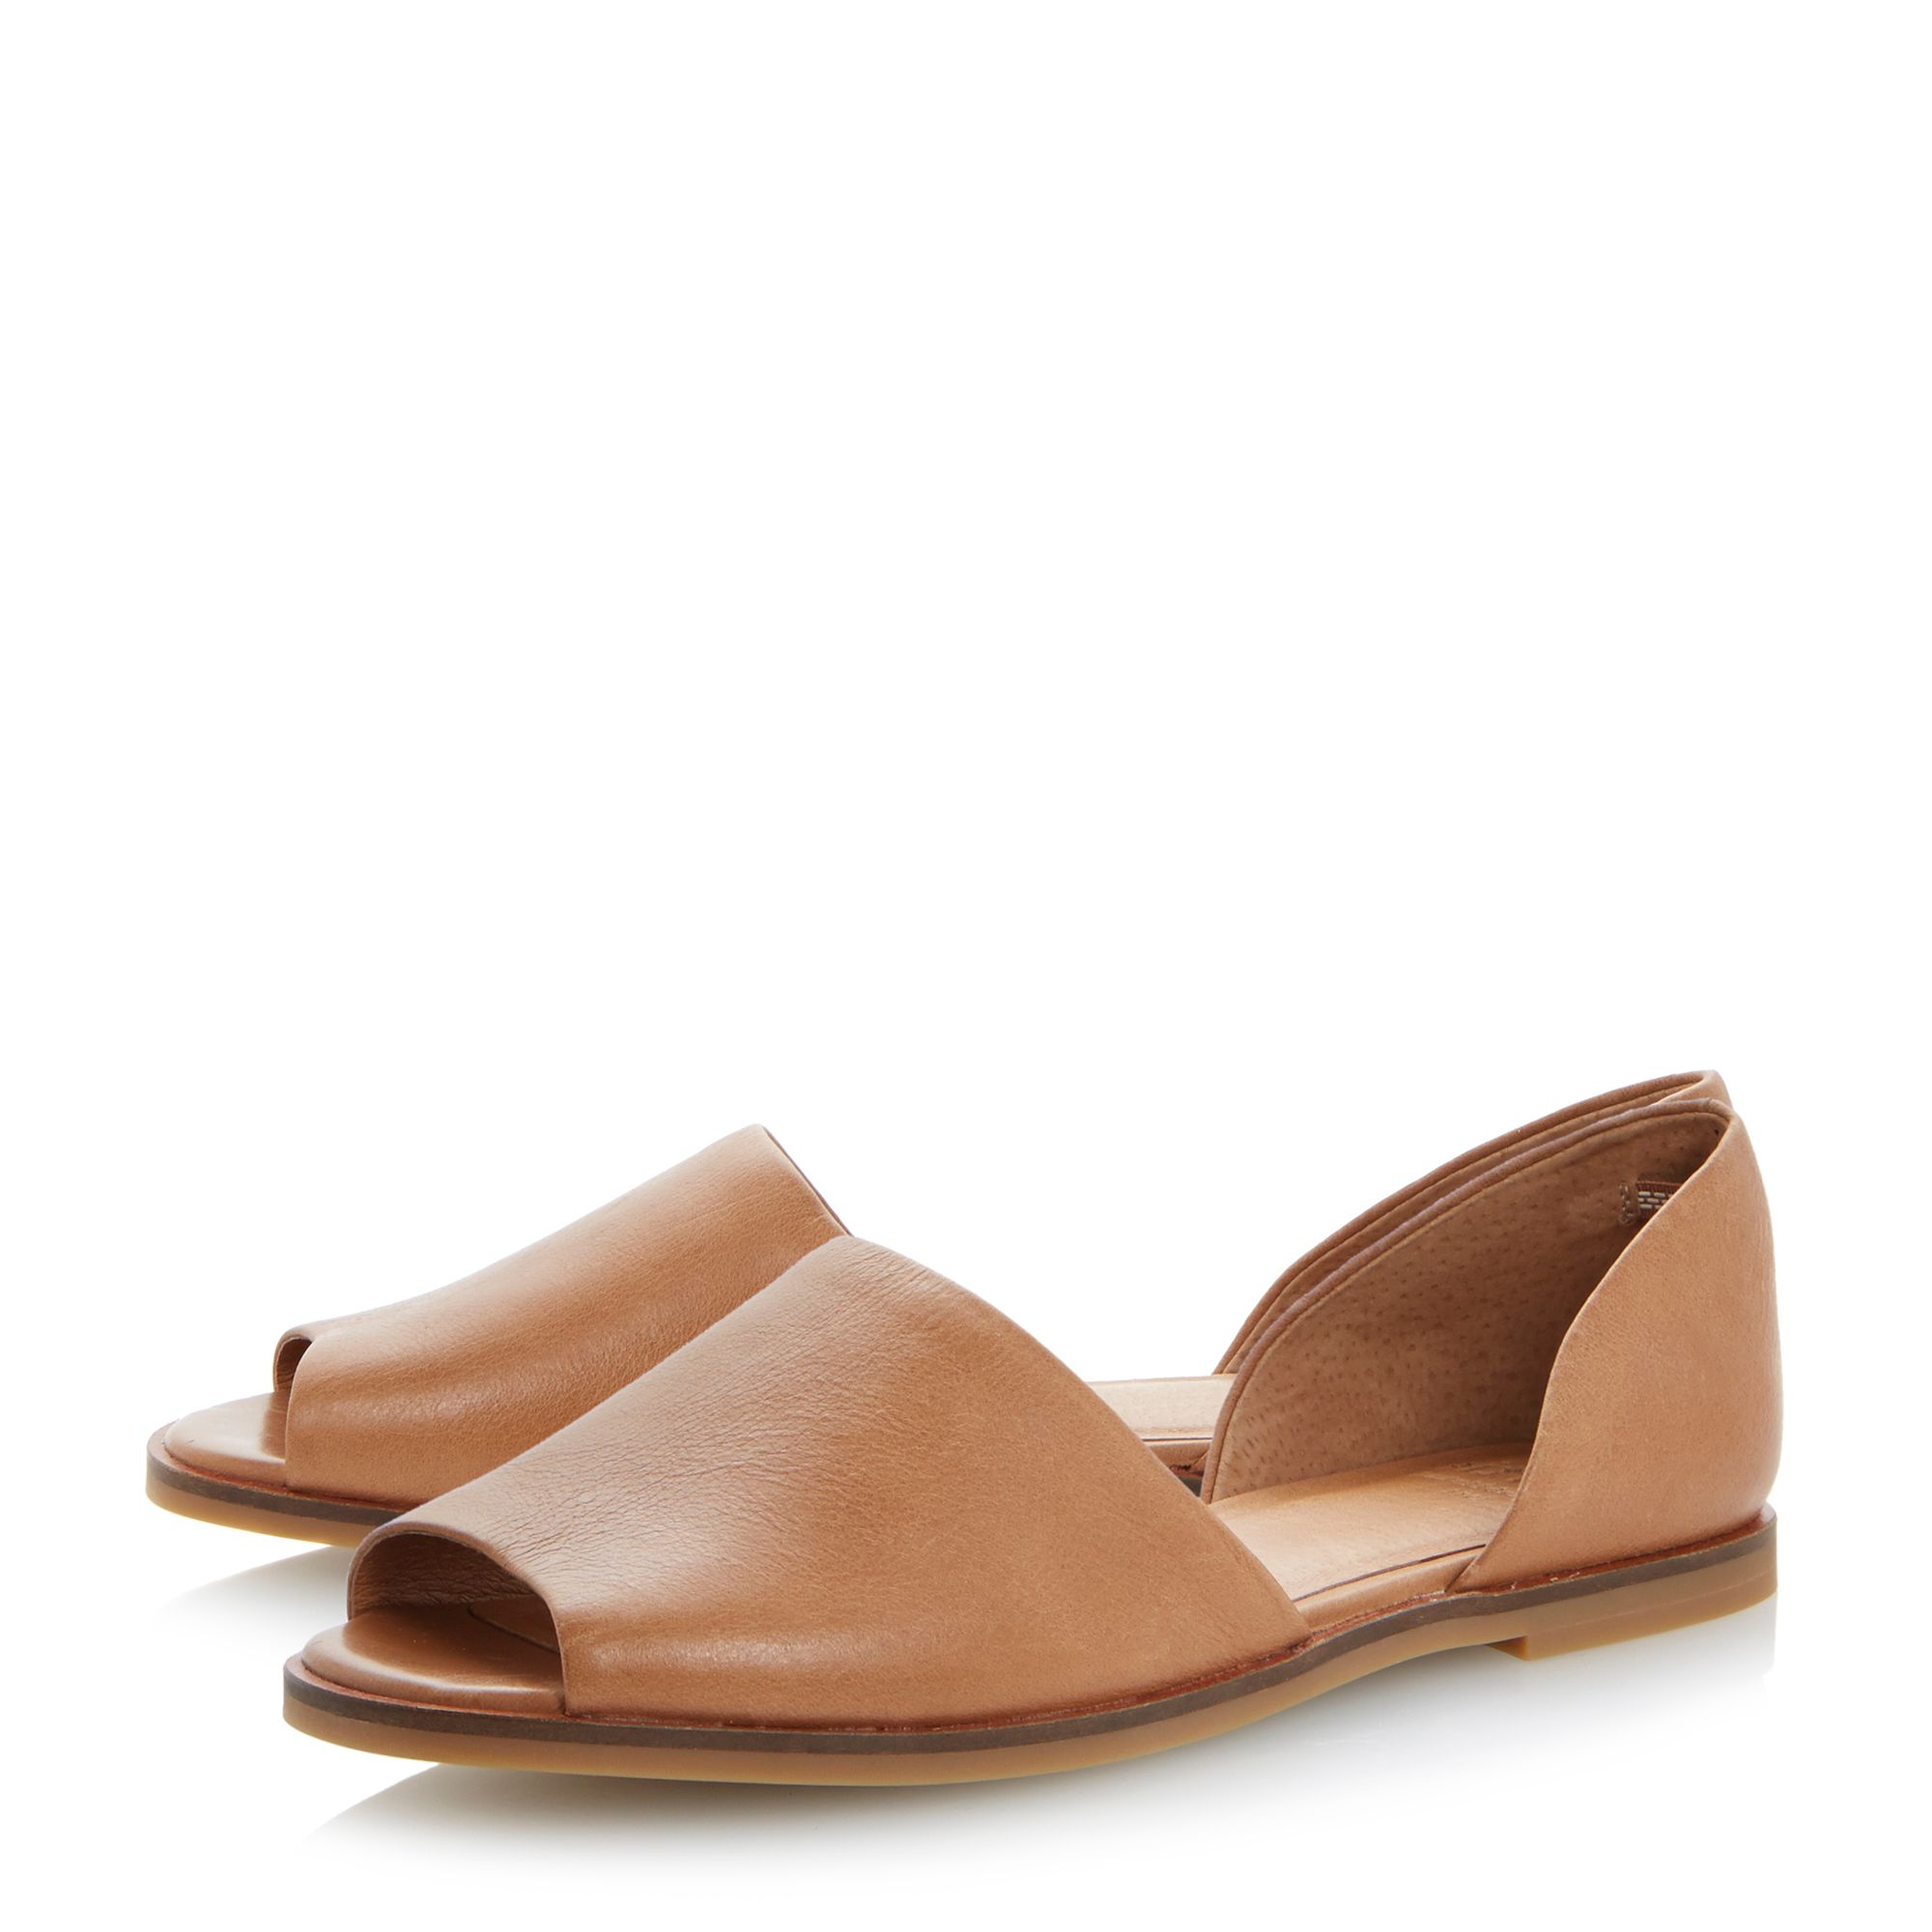 Jambi peeptoe leather flat sandal